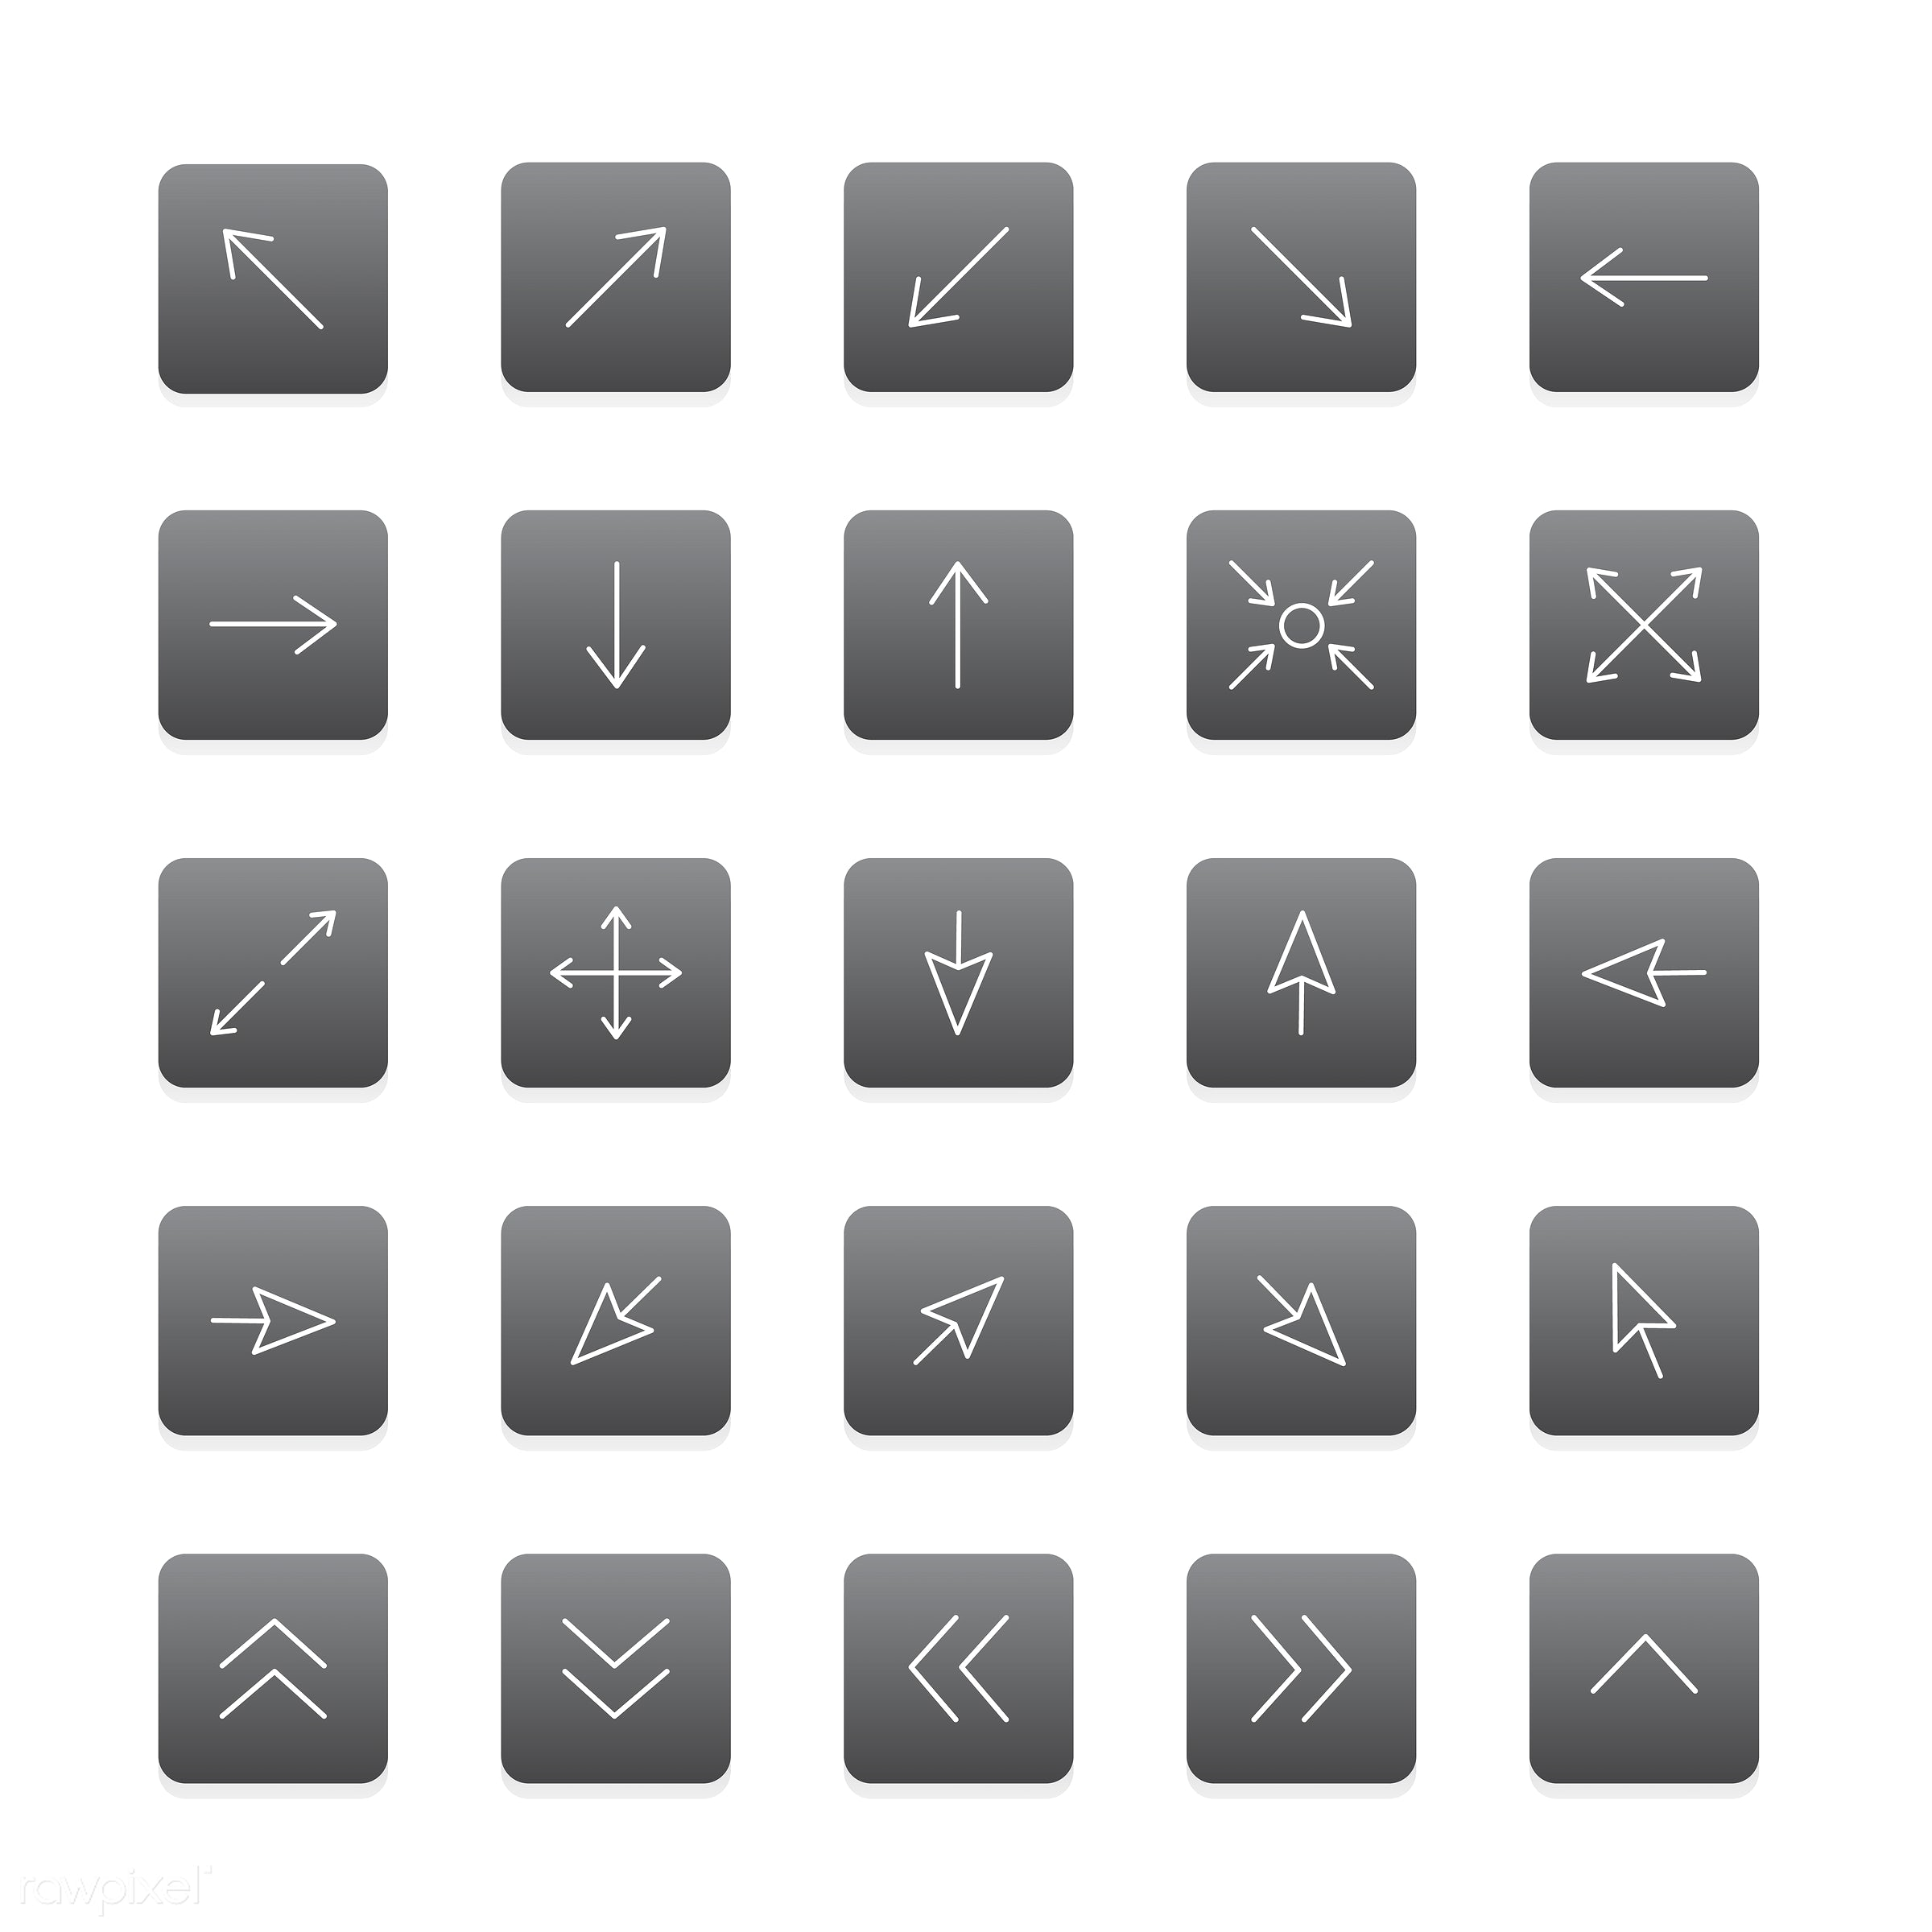 Vector set of arrow icon - collection, design, flat, graphic, icon, illustration, isolated, layout, platform, set, style,...